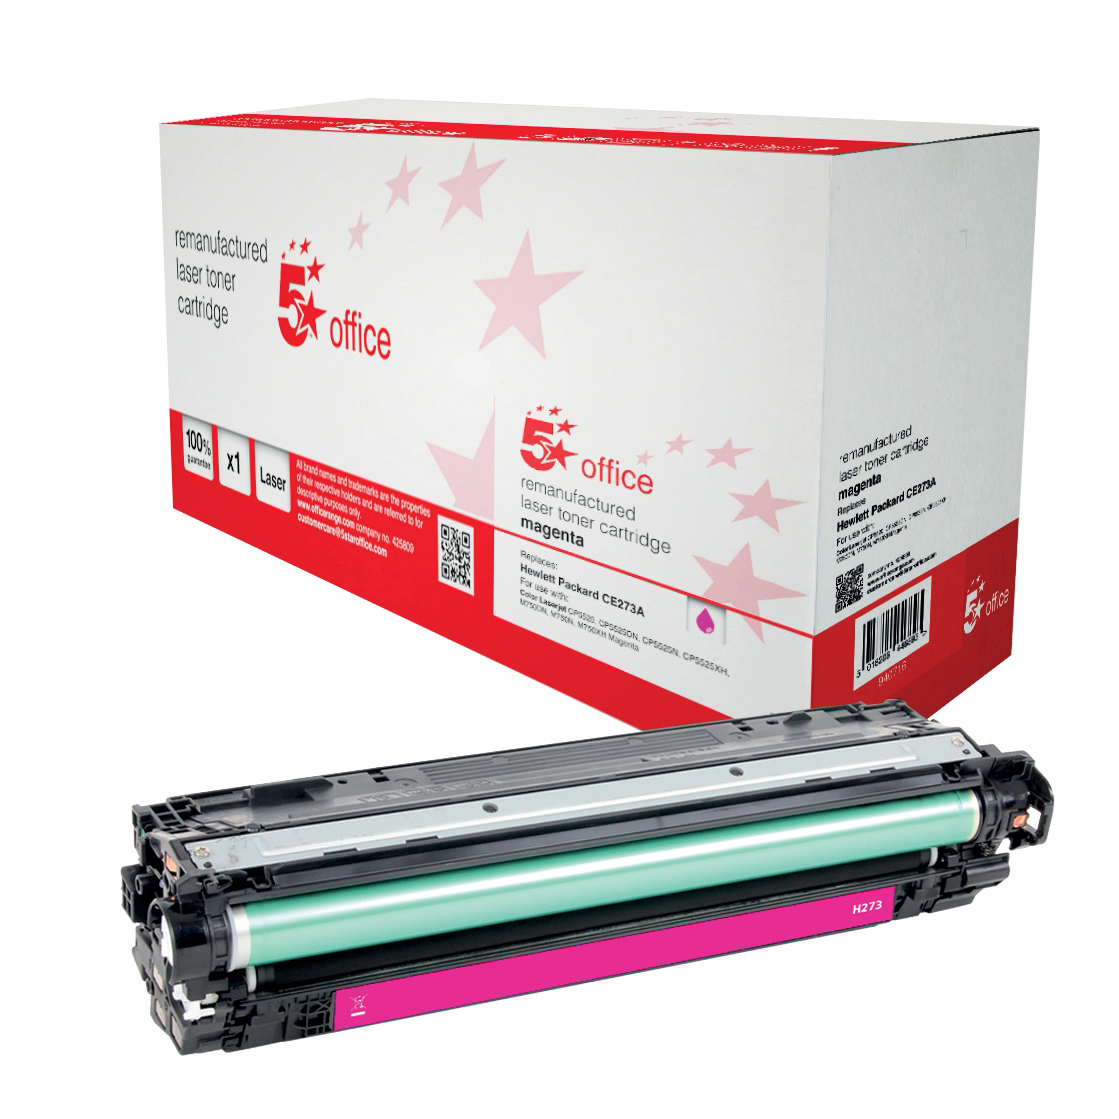 5 Star Office Remanufactured Laser Toner Cartridge Page Life 15000pp Magenta [HP 650A CE273A Alternative]